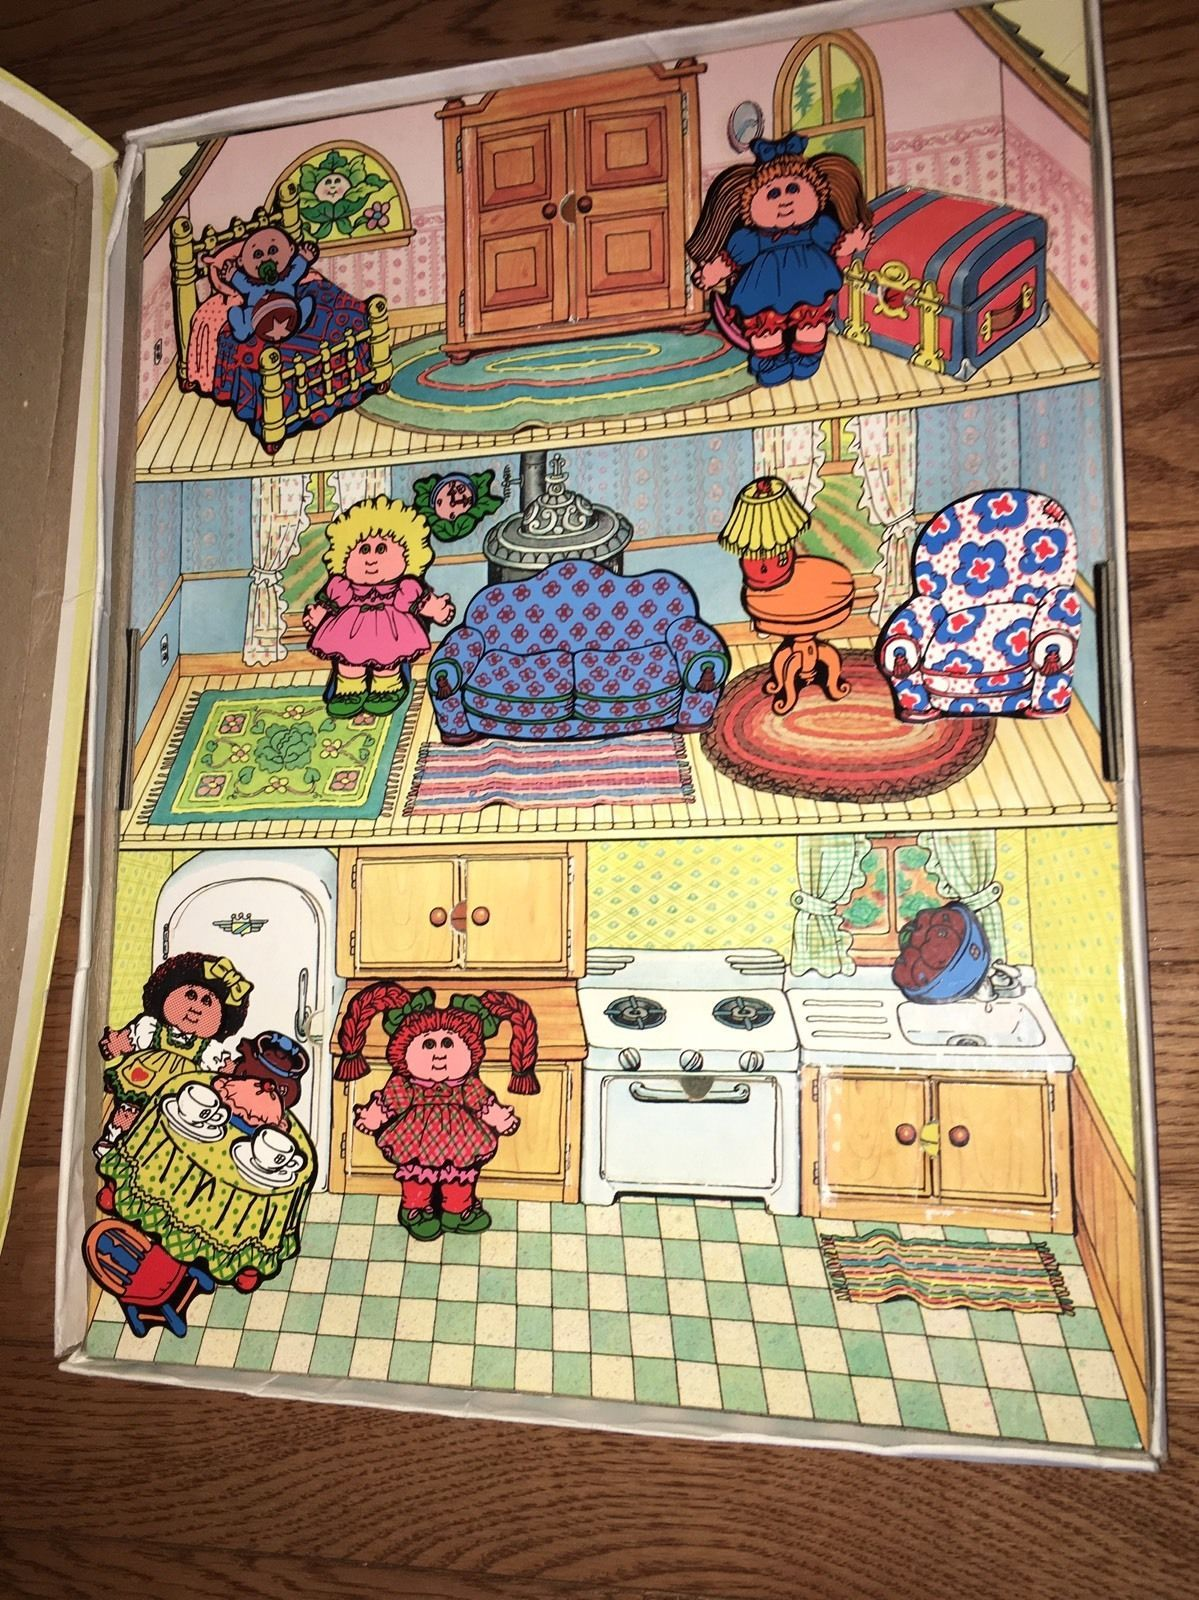 Lot of 7 Cabbage Patch Kids Doll Accessories: Puzzles Colorforms Paper Dolls Etc  | eBay #dollaccessories